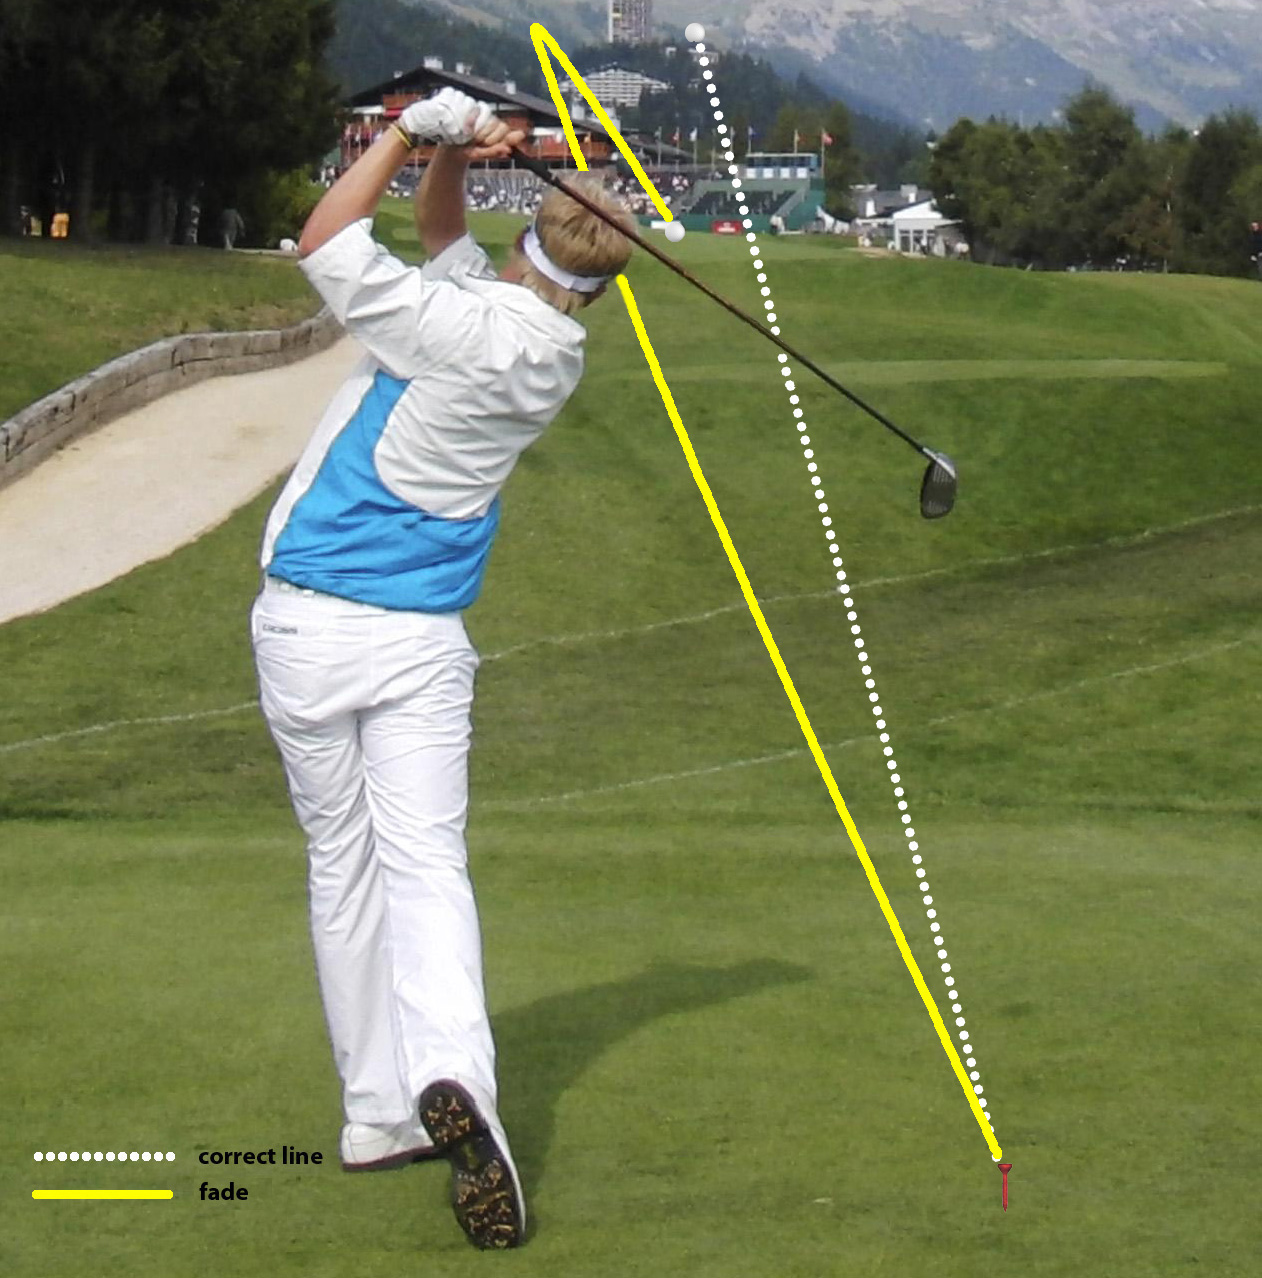 Golf swing tips - 8: How to hit a fade